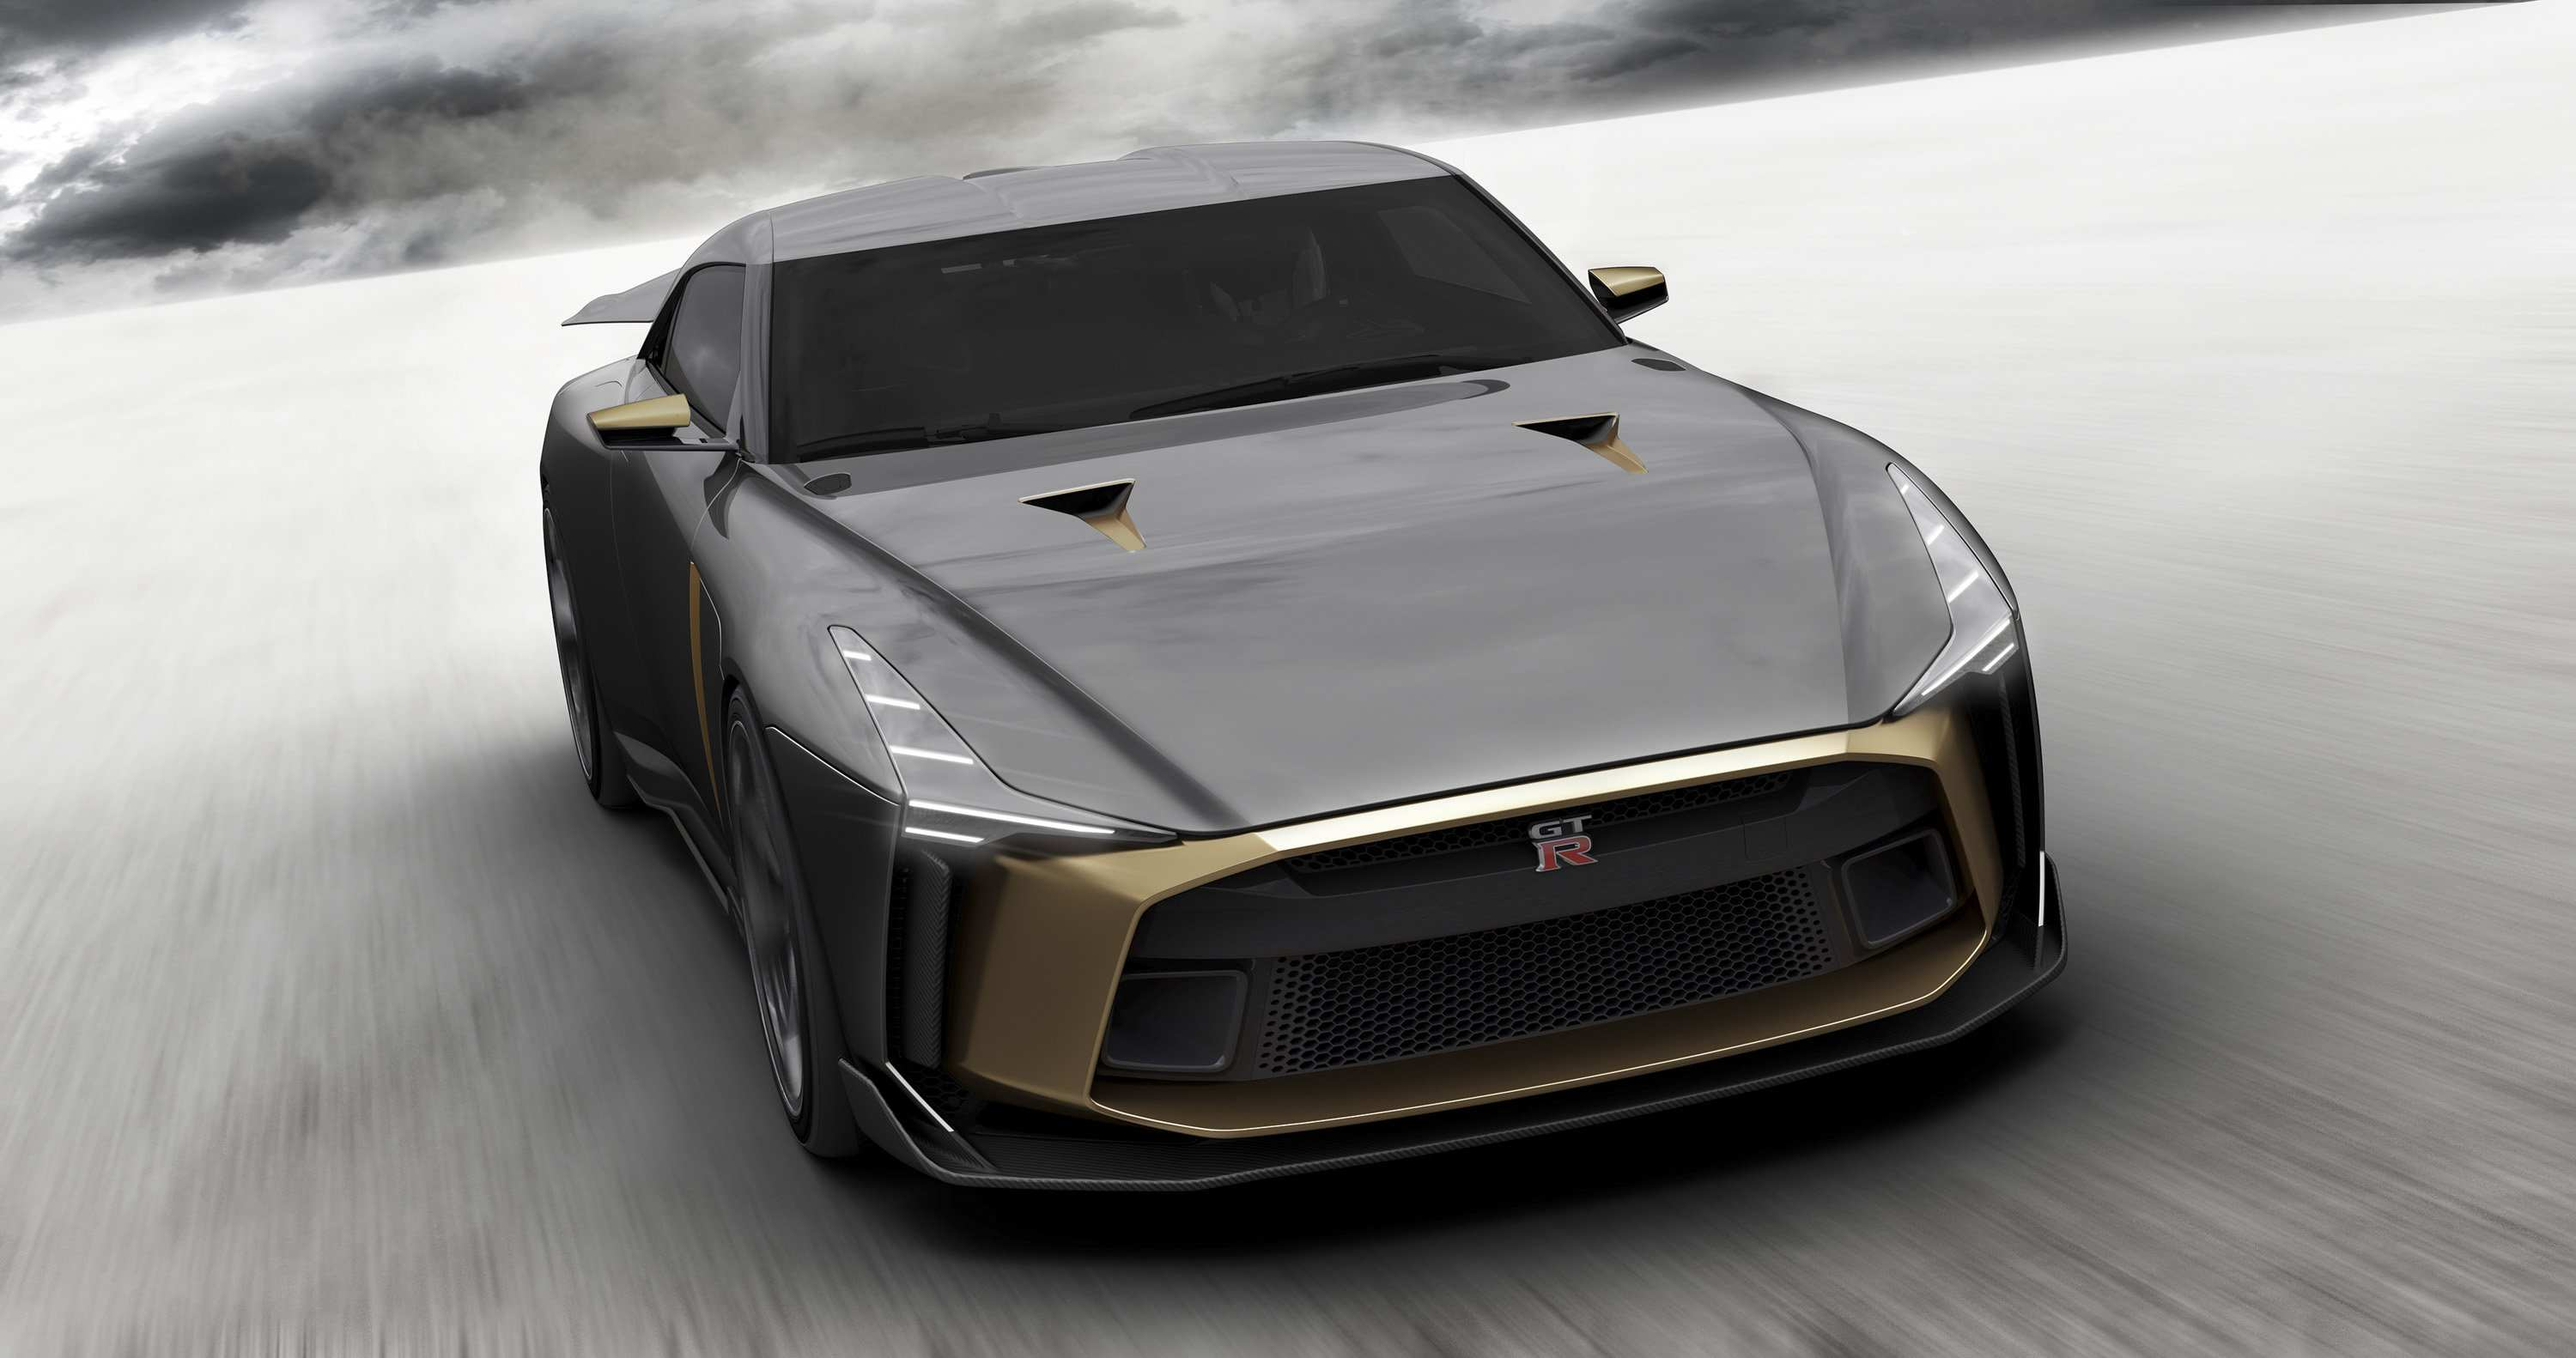 98 All New Nissan Gtr R36 2020 Pricing with Nissan Gtr R36 2020